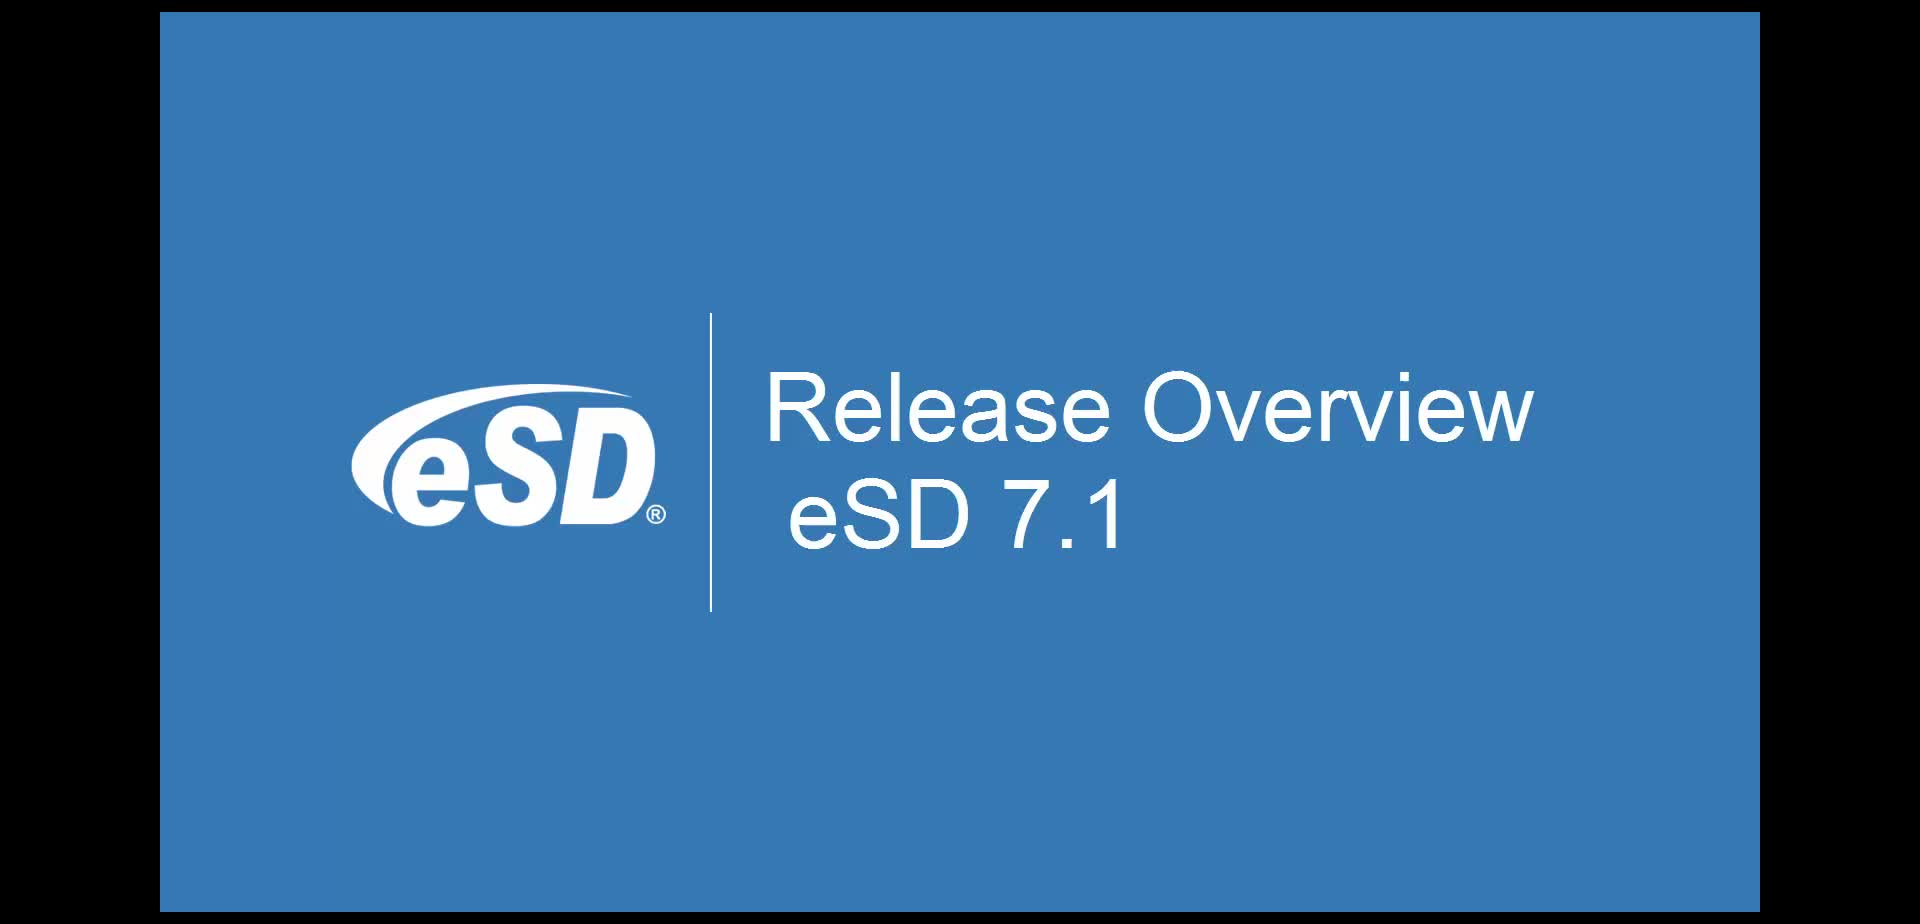 eSD 7.1 Release Overview